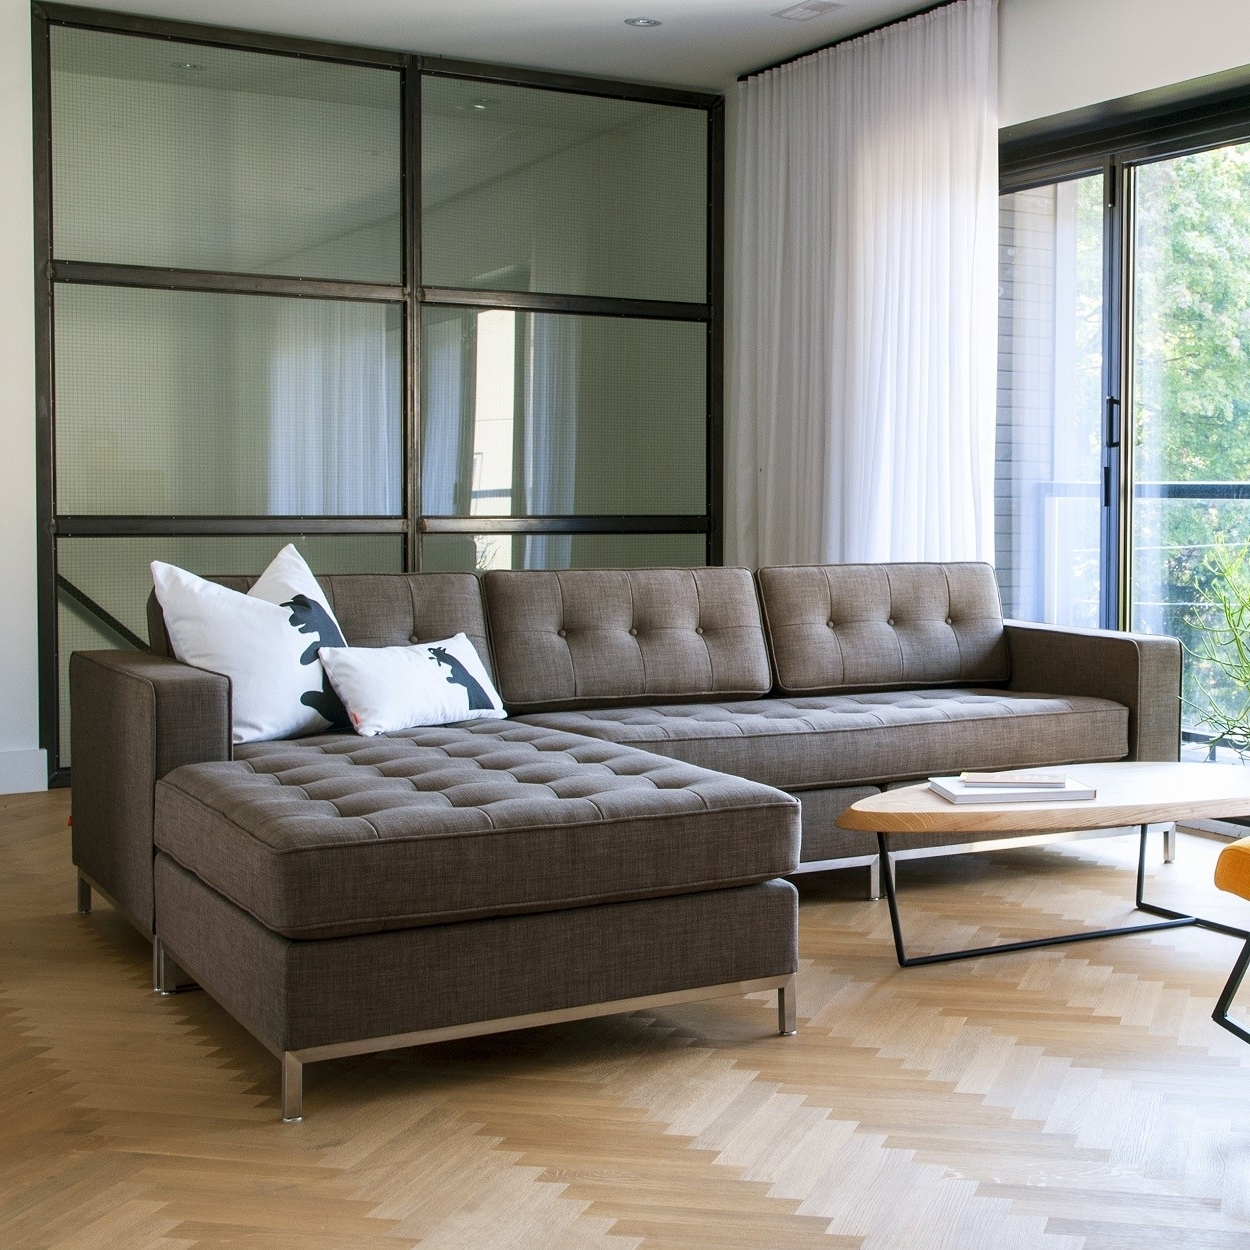 Most Popular Kitchener Sectional Sofas Throughout Modern Sectional Sofas For Sale (View 12 of 20)